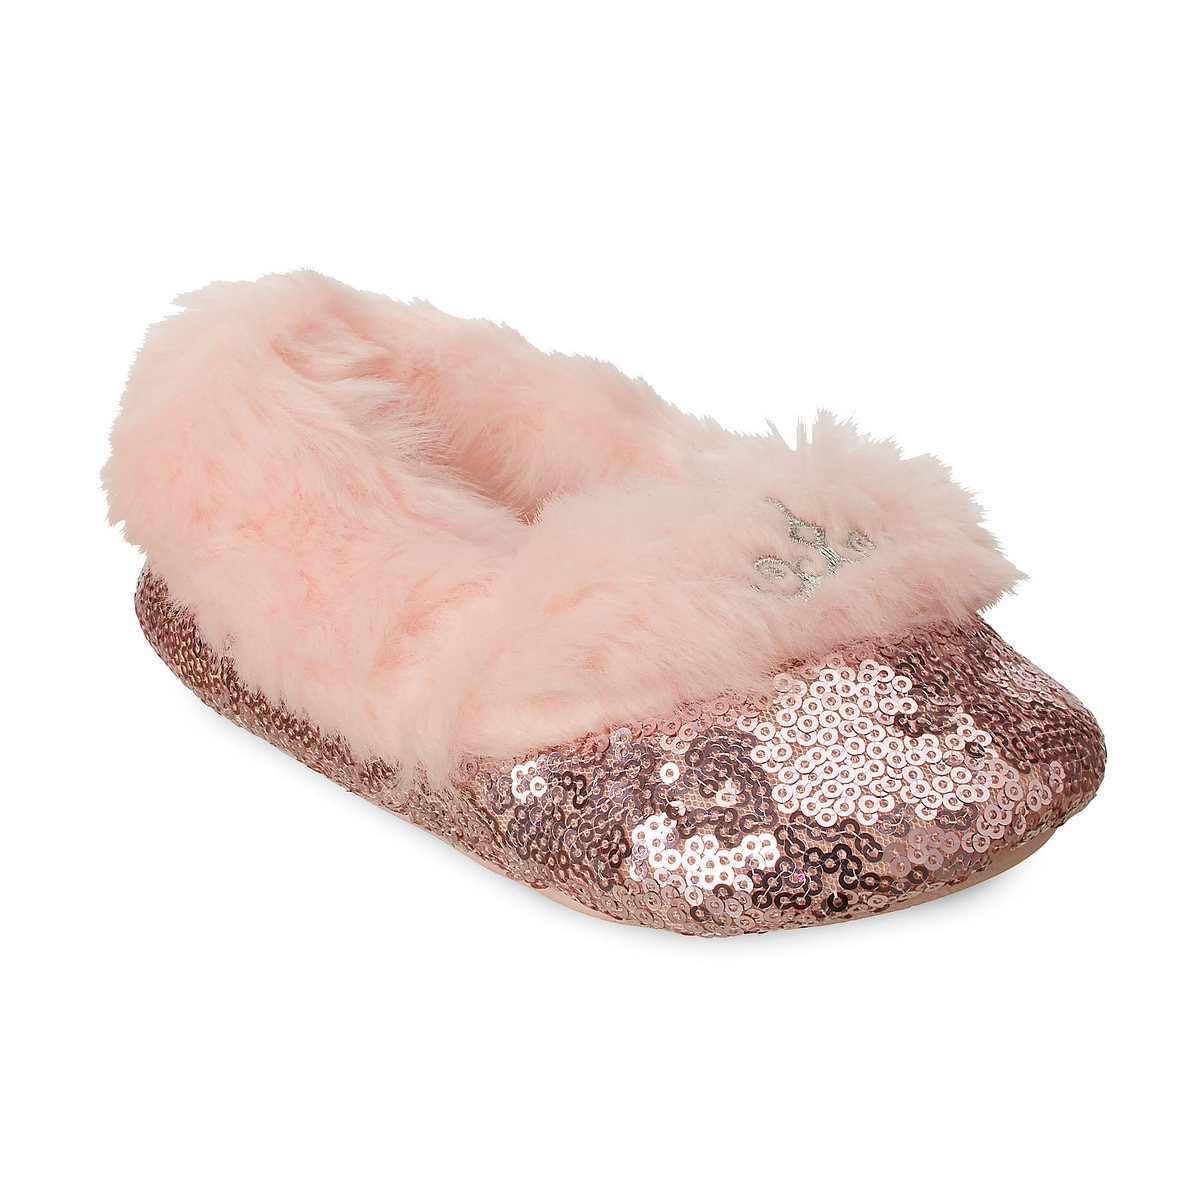 76b25f23cf2 Product Image of Disney Princess Sequin Slippers for Kids   1